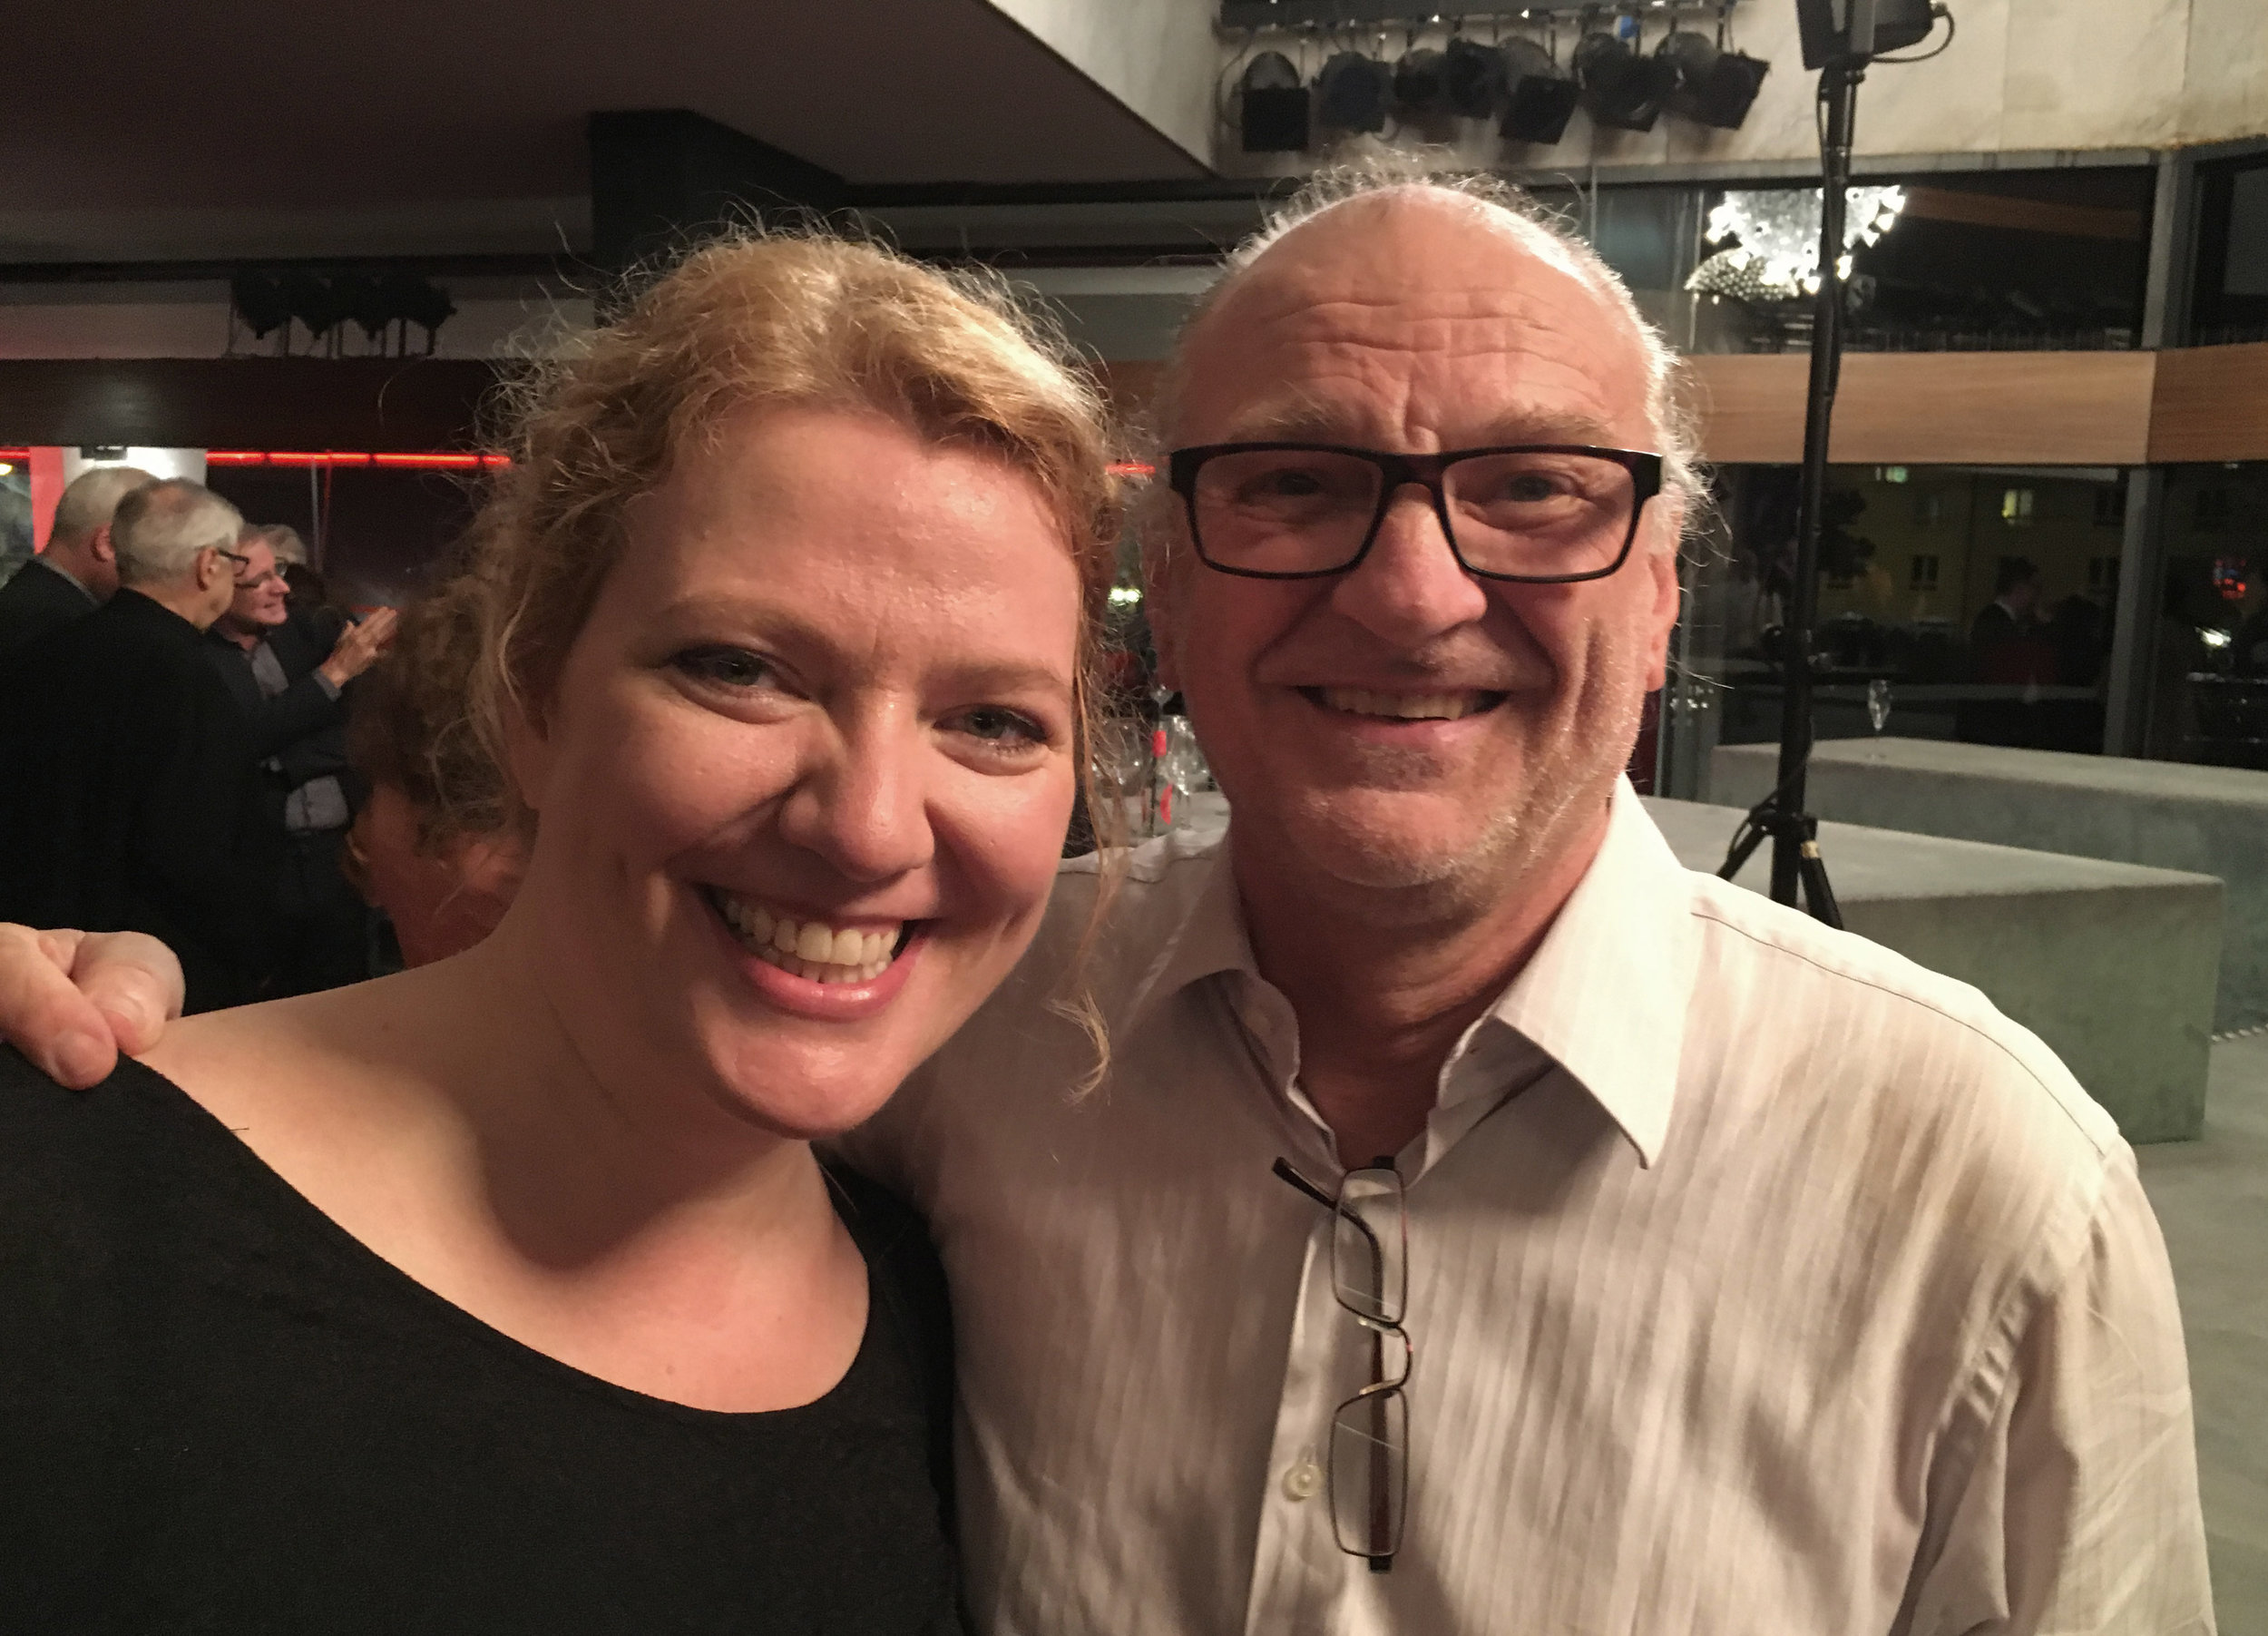 Aile Asszonyi and Peter Konwitschny (Bonn, 15 October 2017)